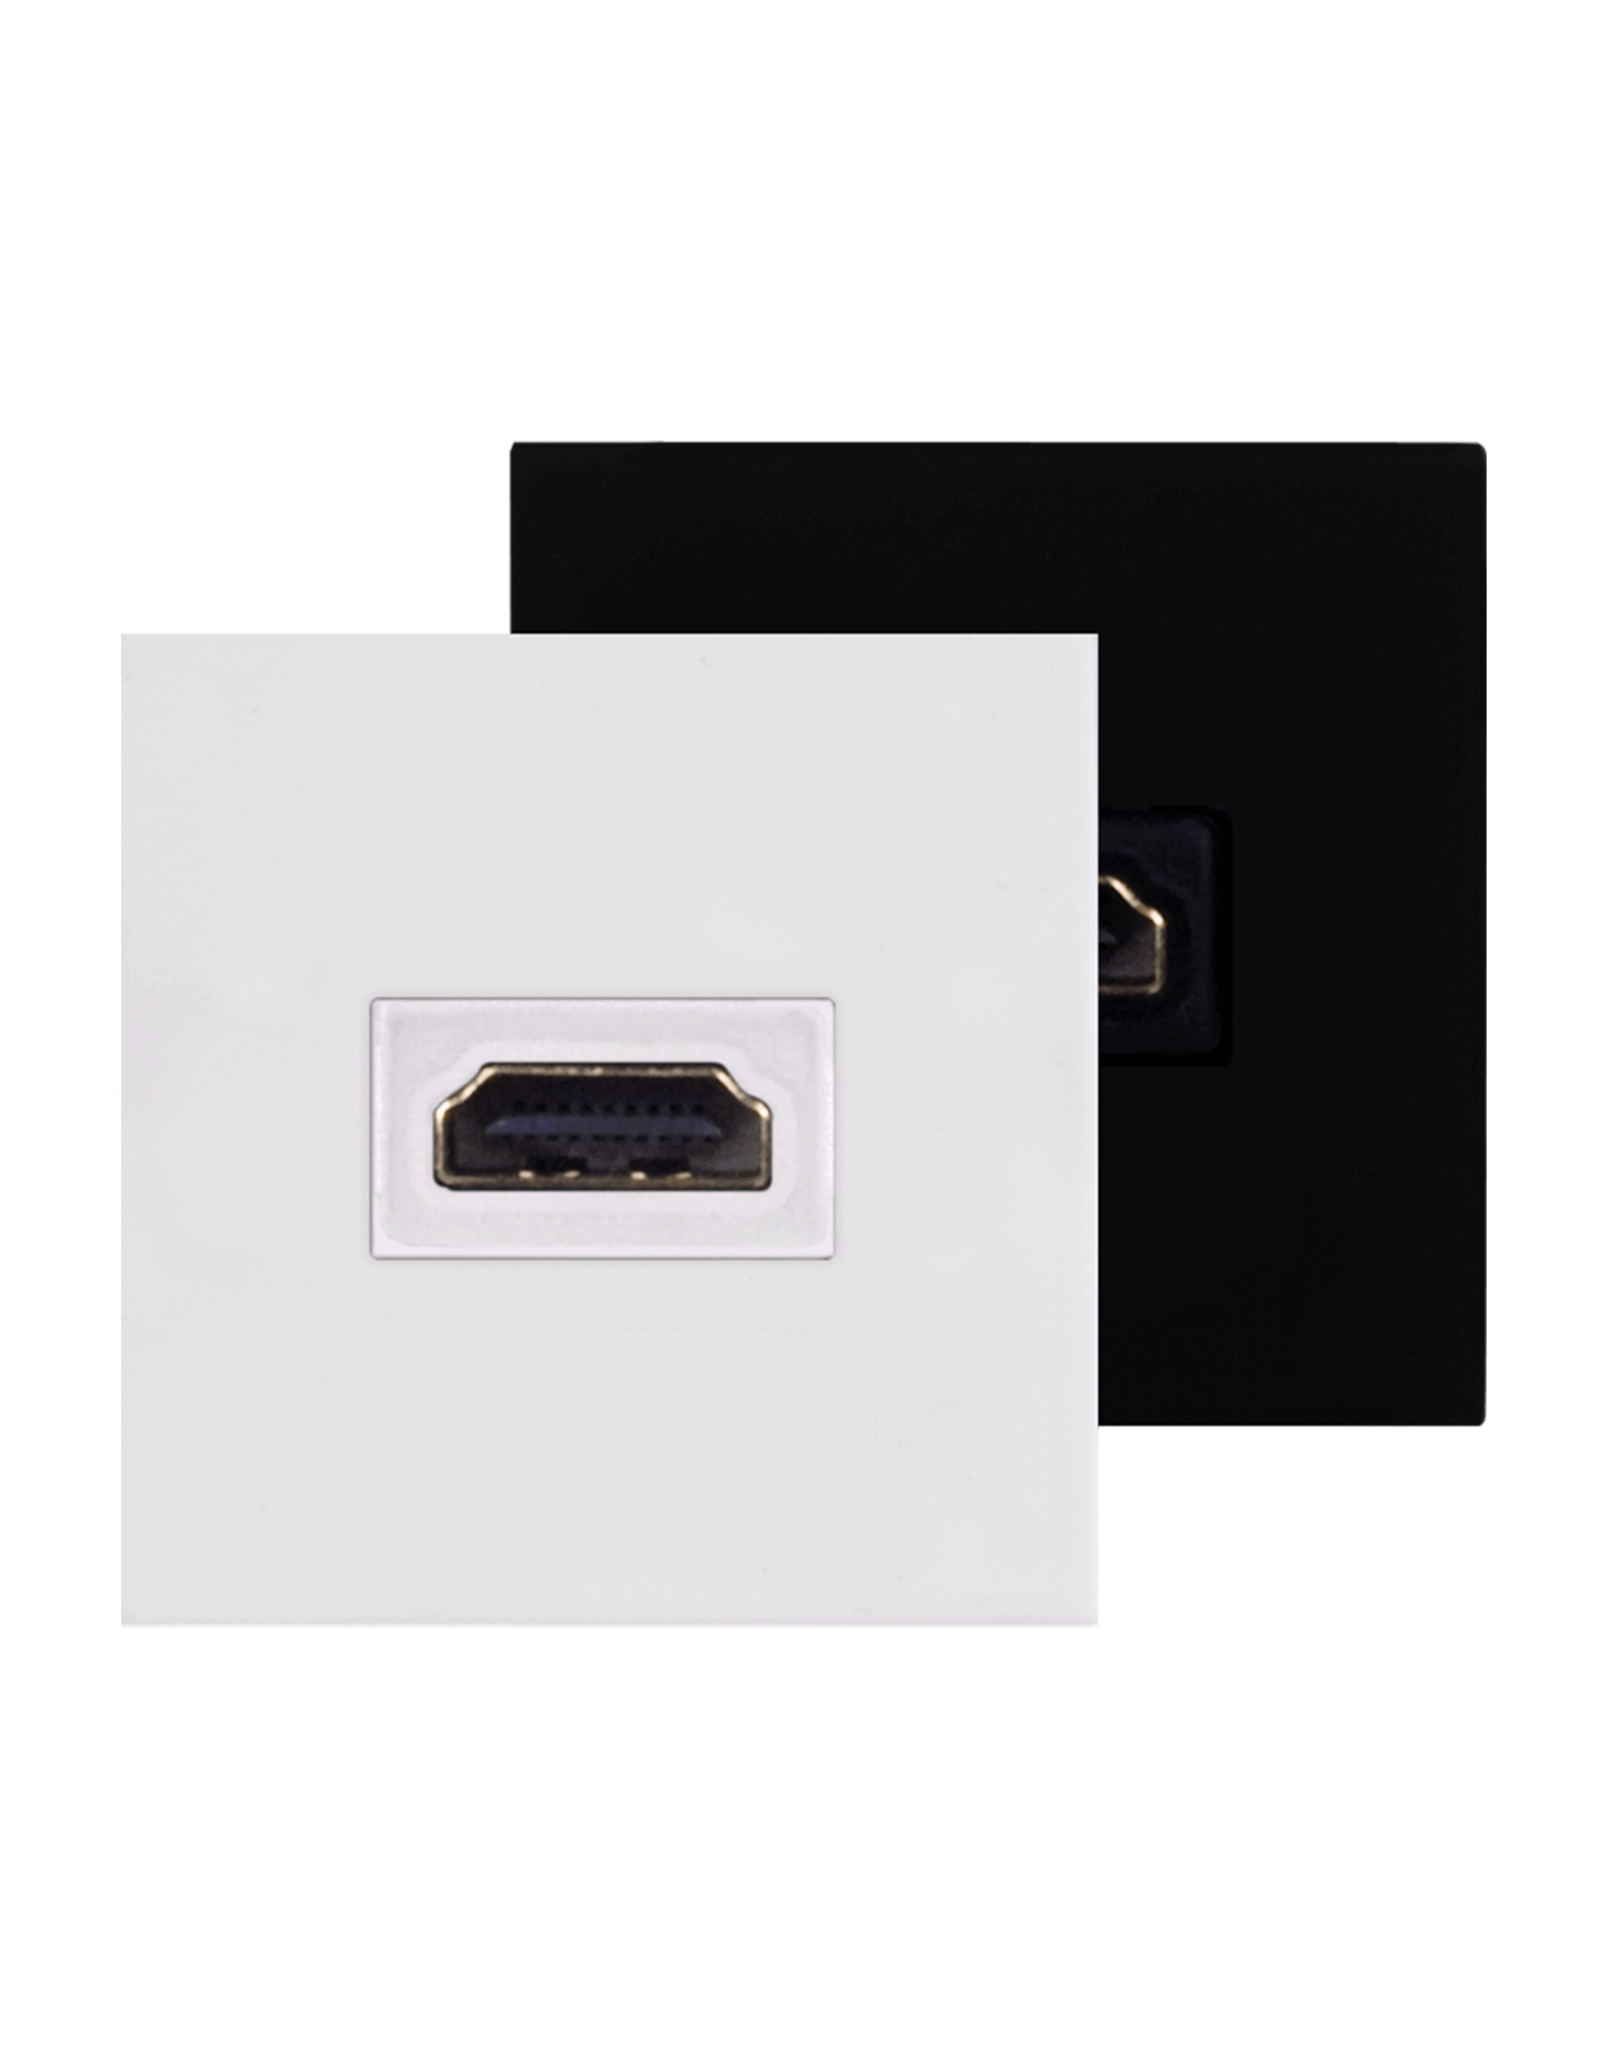 Audac Connection plate HDMI 45 x 45 mm White version